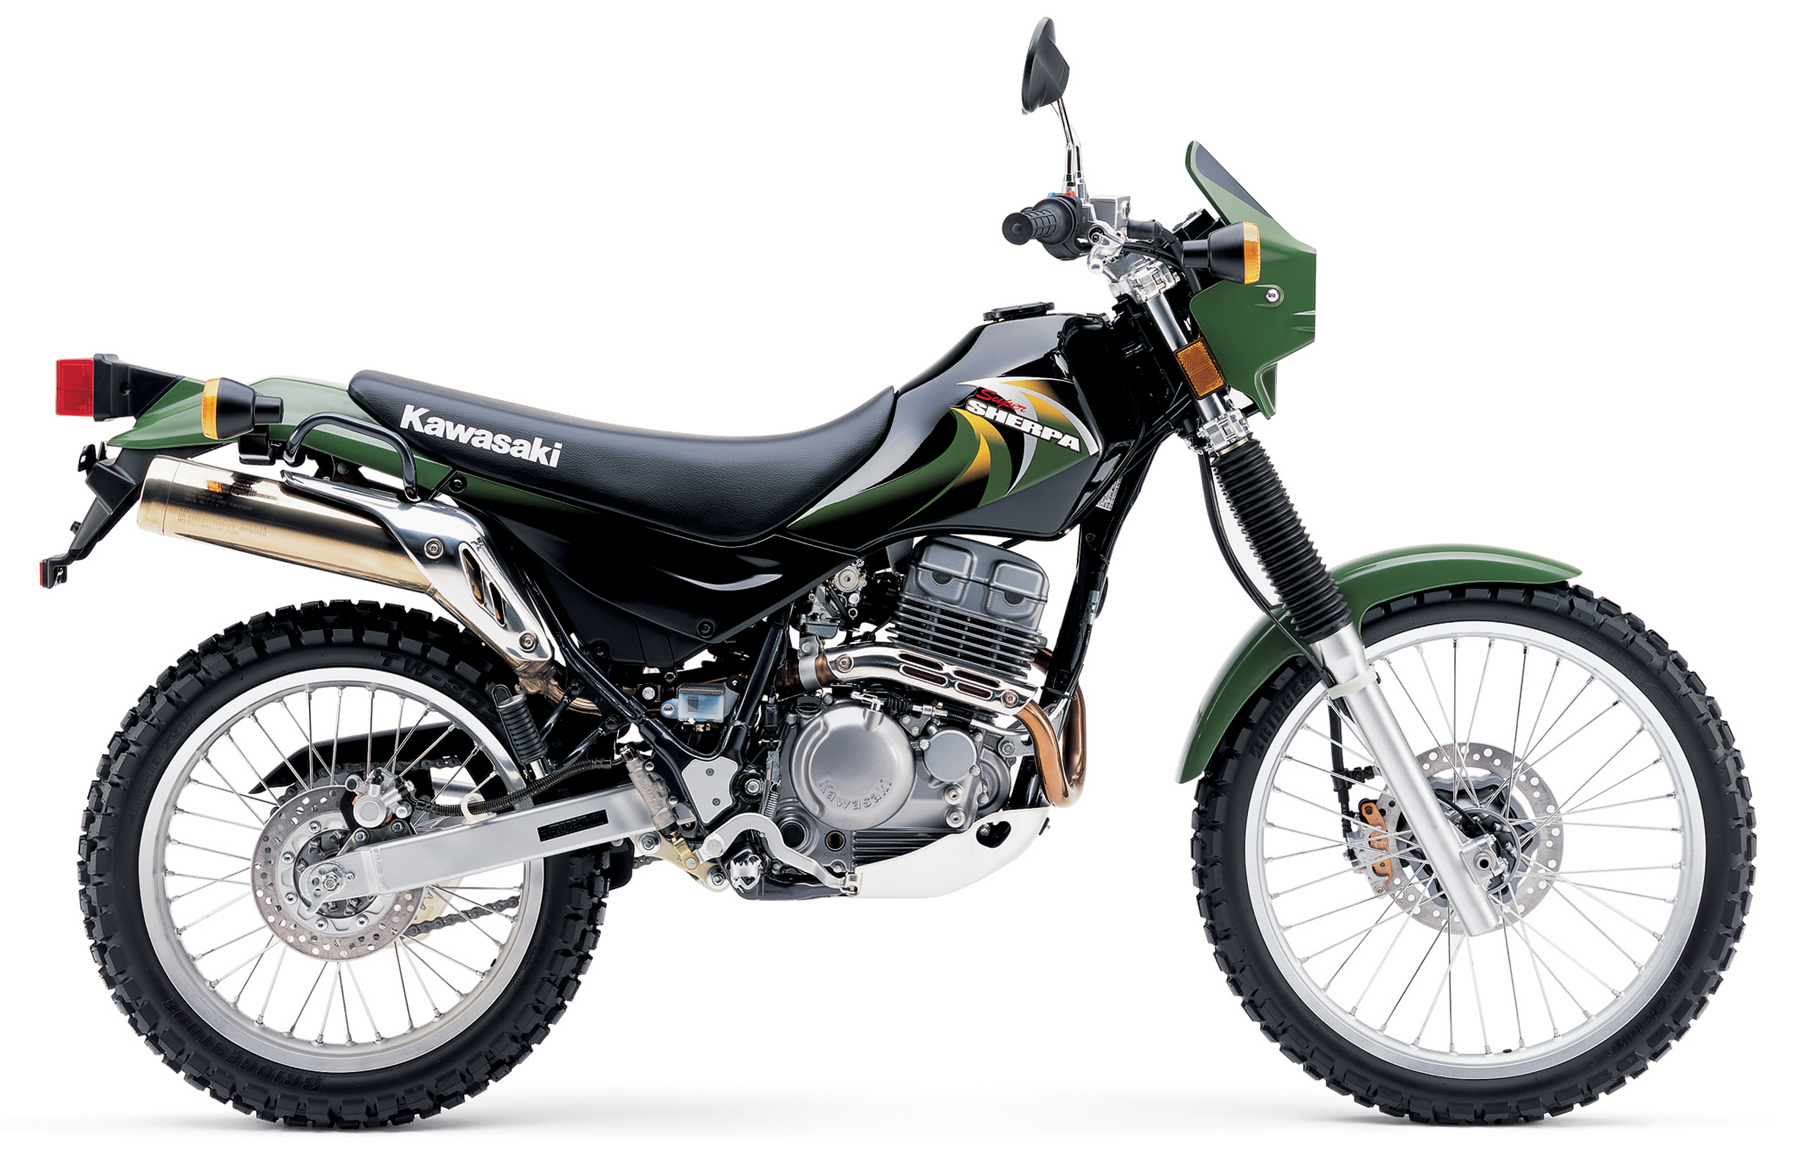 2009 Kawasaki Super Sherpa | Top Speed